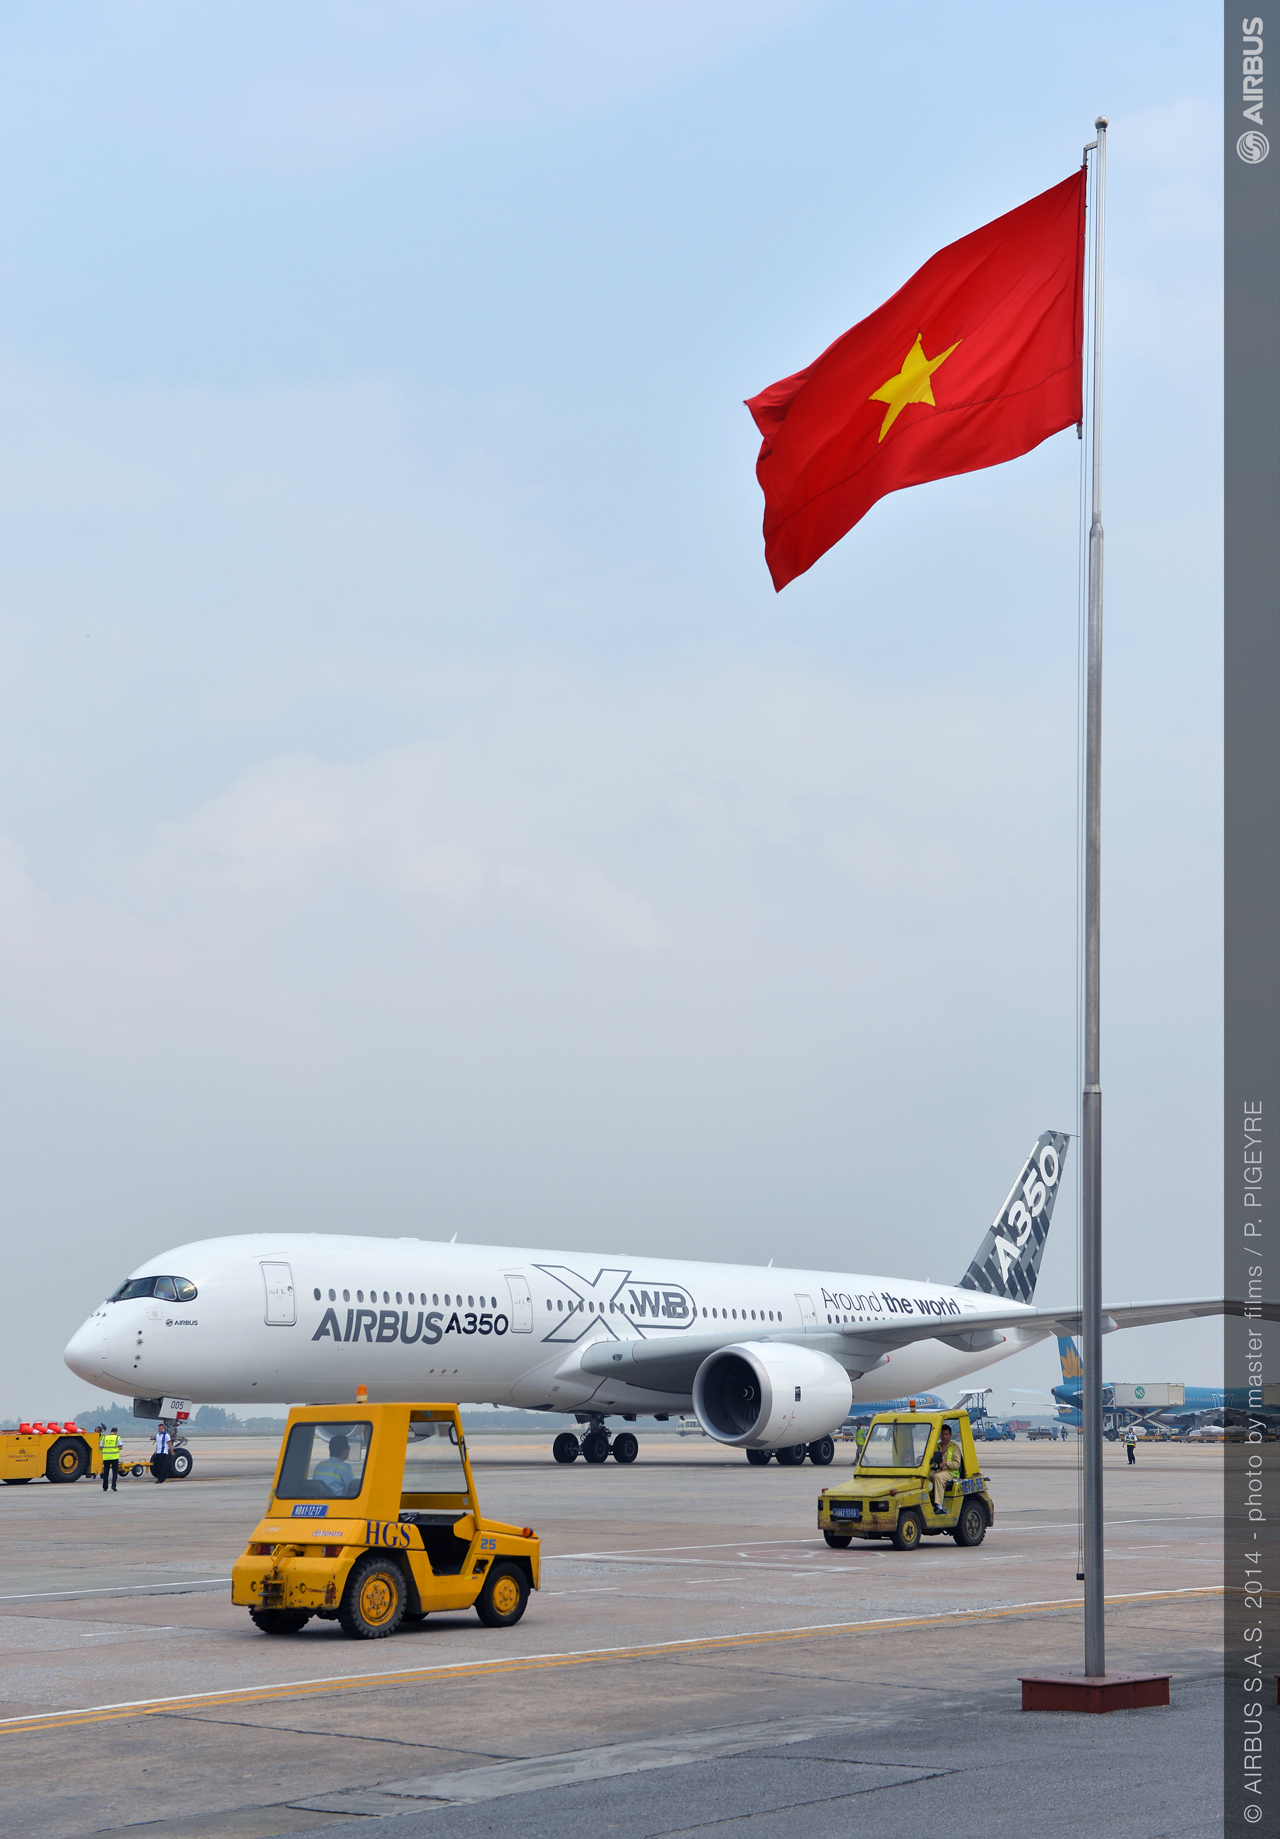 Airbus' new-generation A350 XWB jetliner arrives in Hanoi, Vietnam as part of its Asian demonstration tour this month